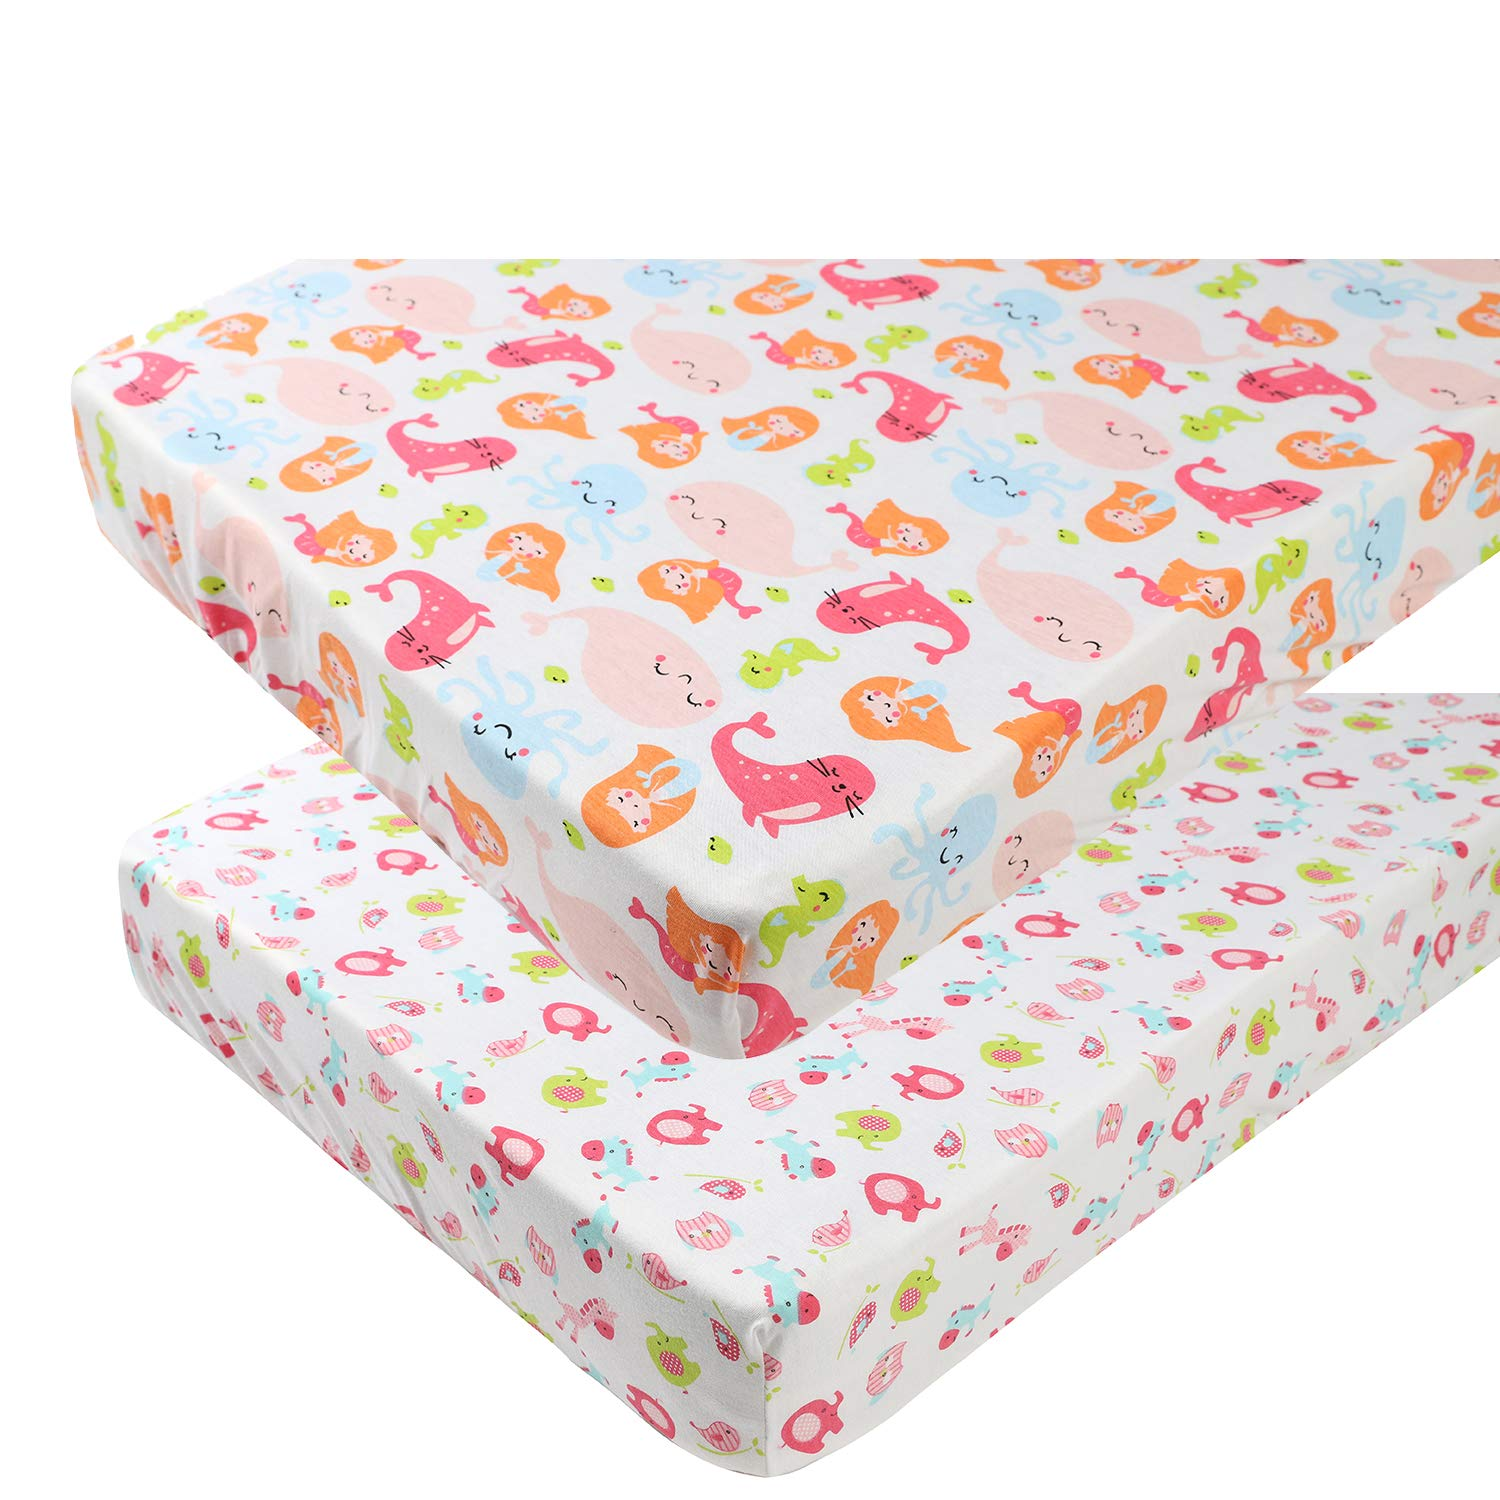 Pack n Play Playard Sheet Set 2 Pack 100% Jersey Knit Cotton Ultra Soft and Stretchy Portable Mini Crib Mattress Fitted Sheets for Baby Girl Boy Mermaid Whale Sea Lion & Other Animal by Knlpruhk